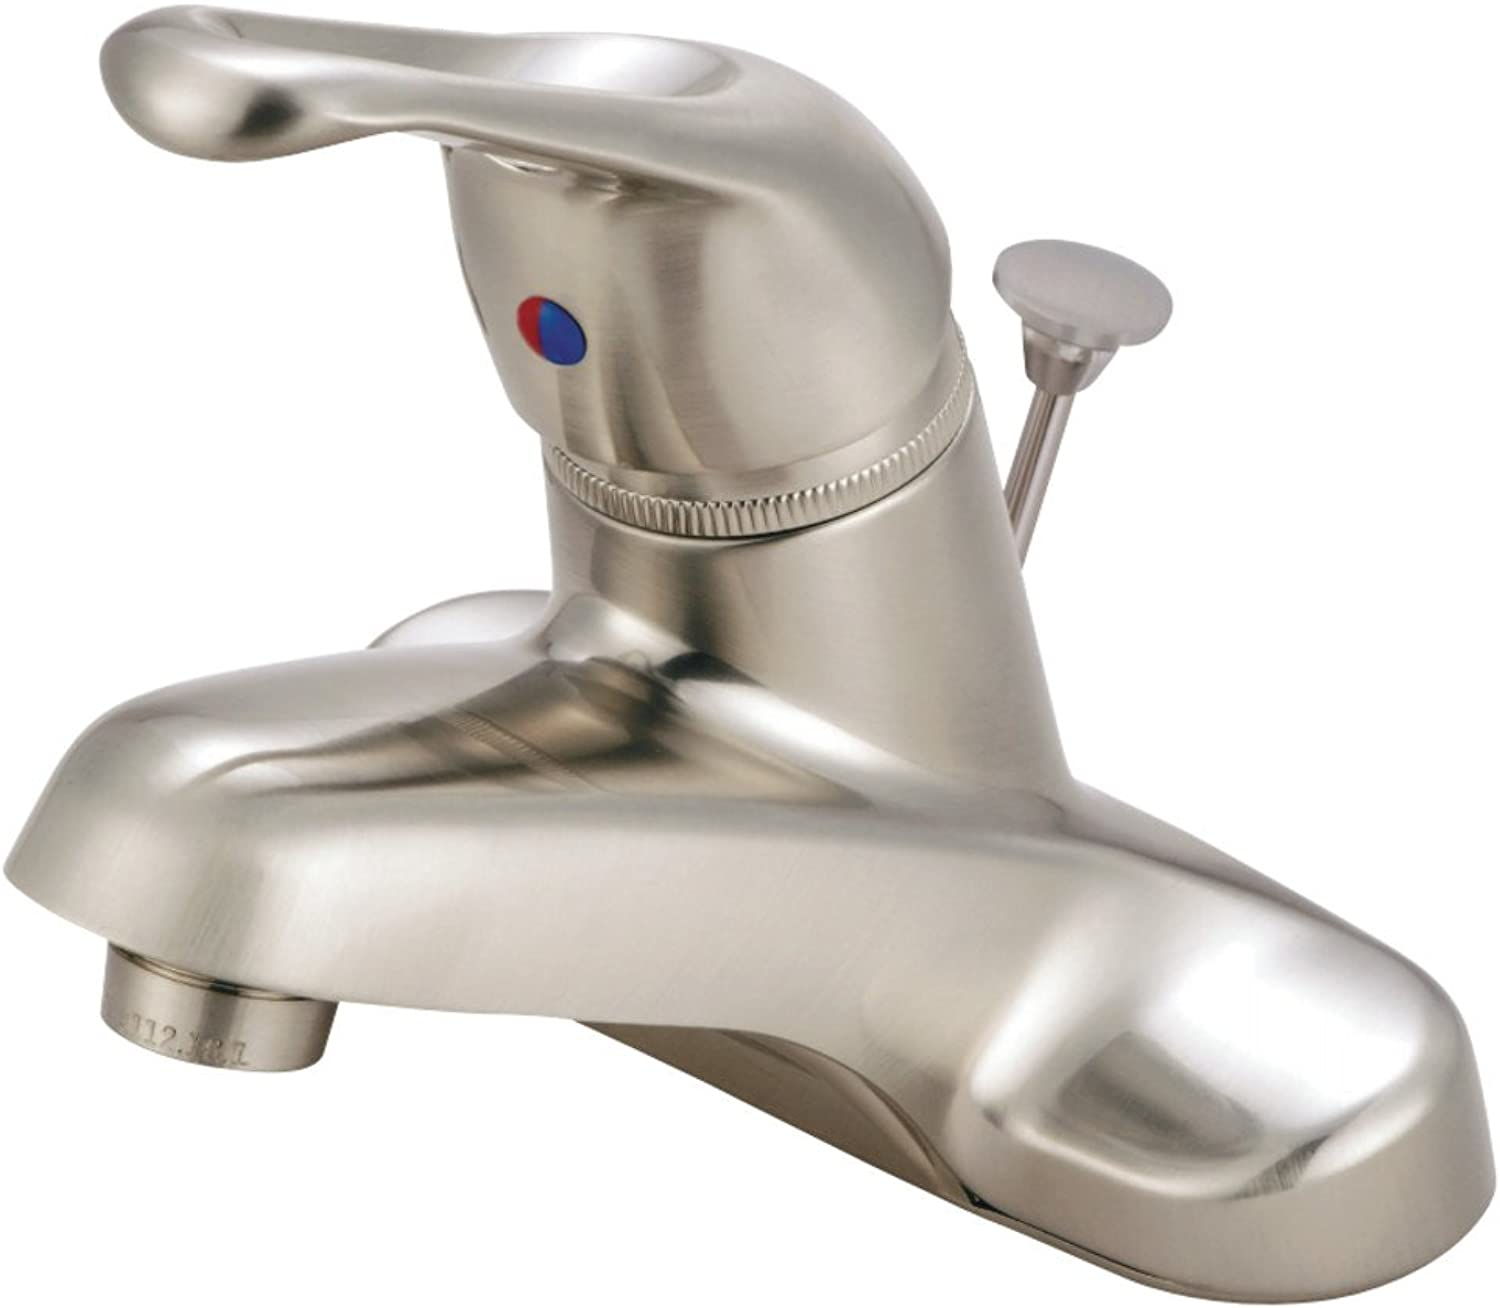 Kingston Brass Gkb518B Single Loop Handle 4-Inch Centerset Lavatory Faucet With Brass Pop-Up, Satin Nickel (Not Ca Vt Compliant)